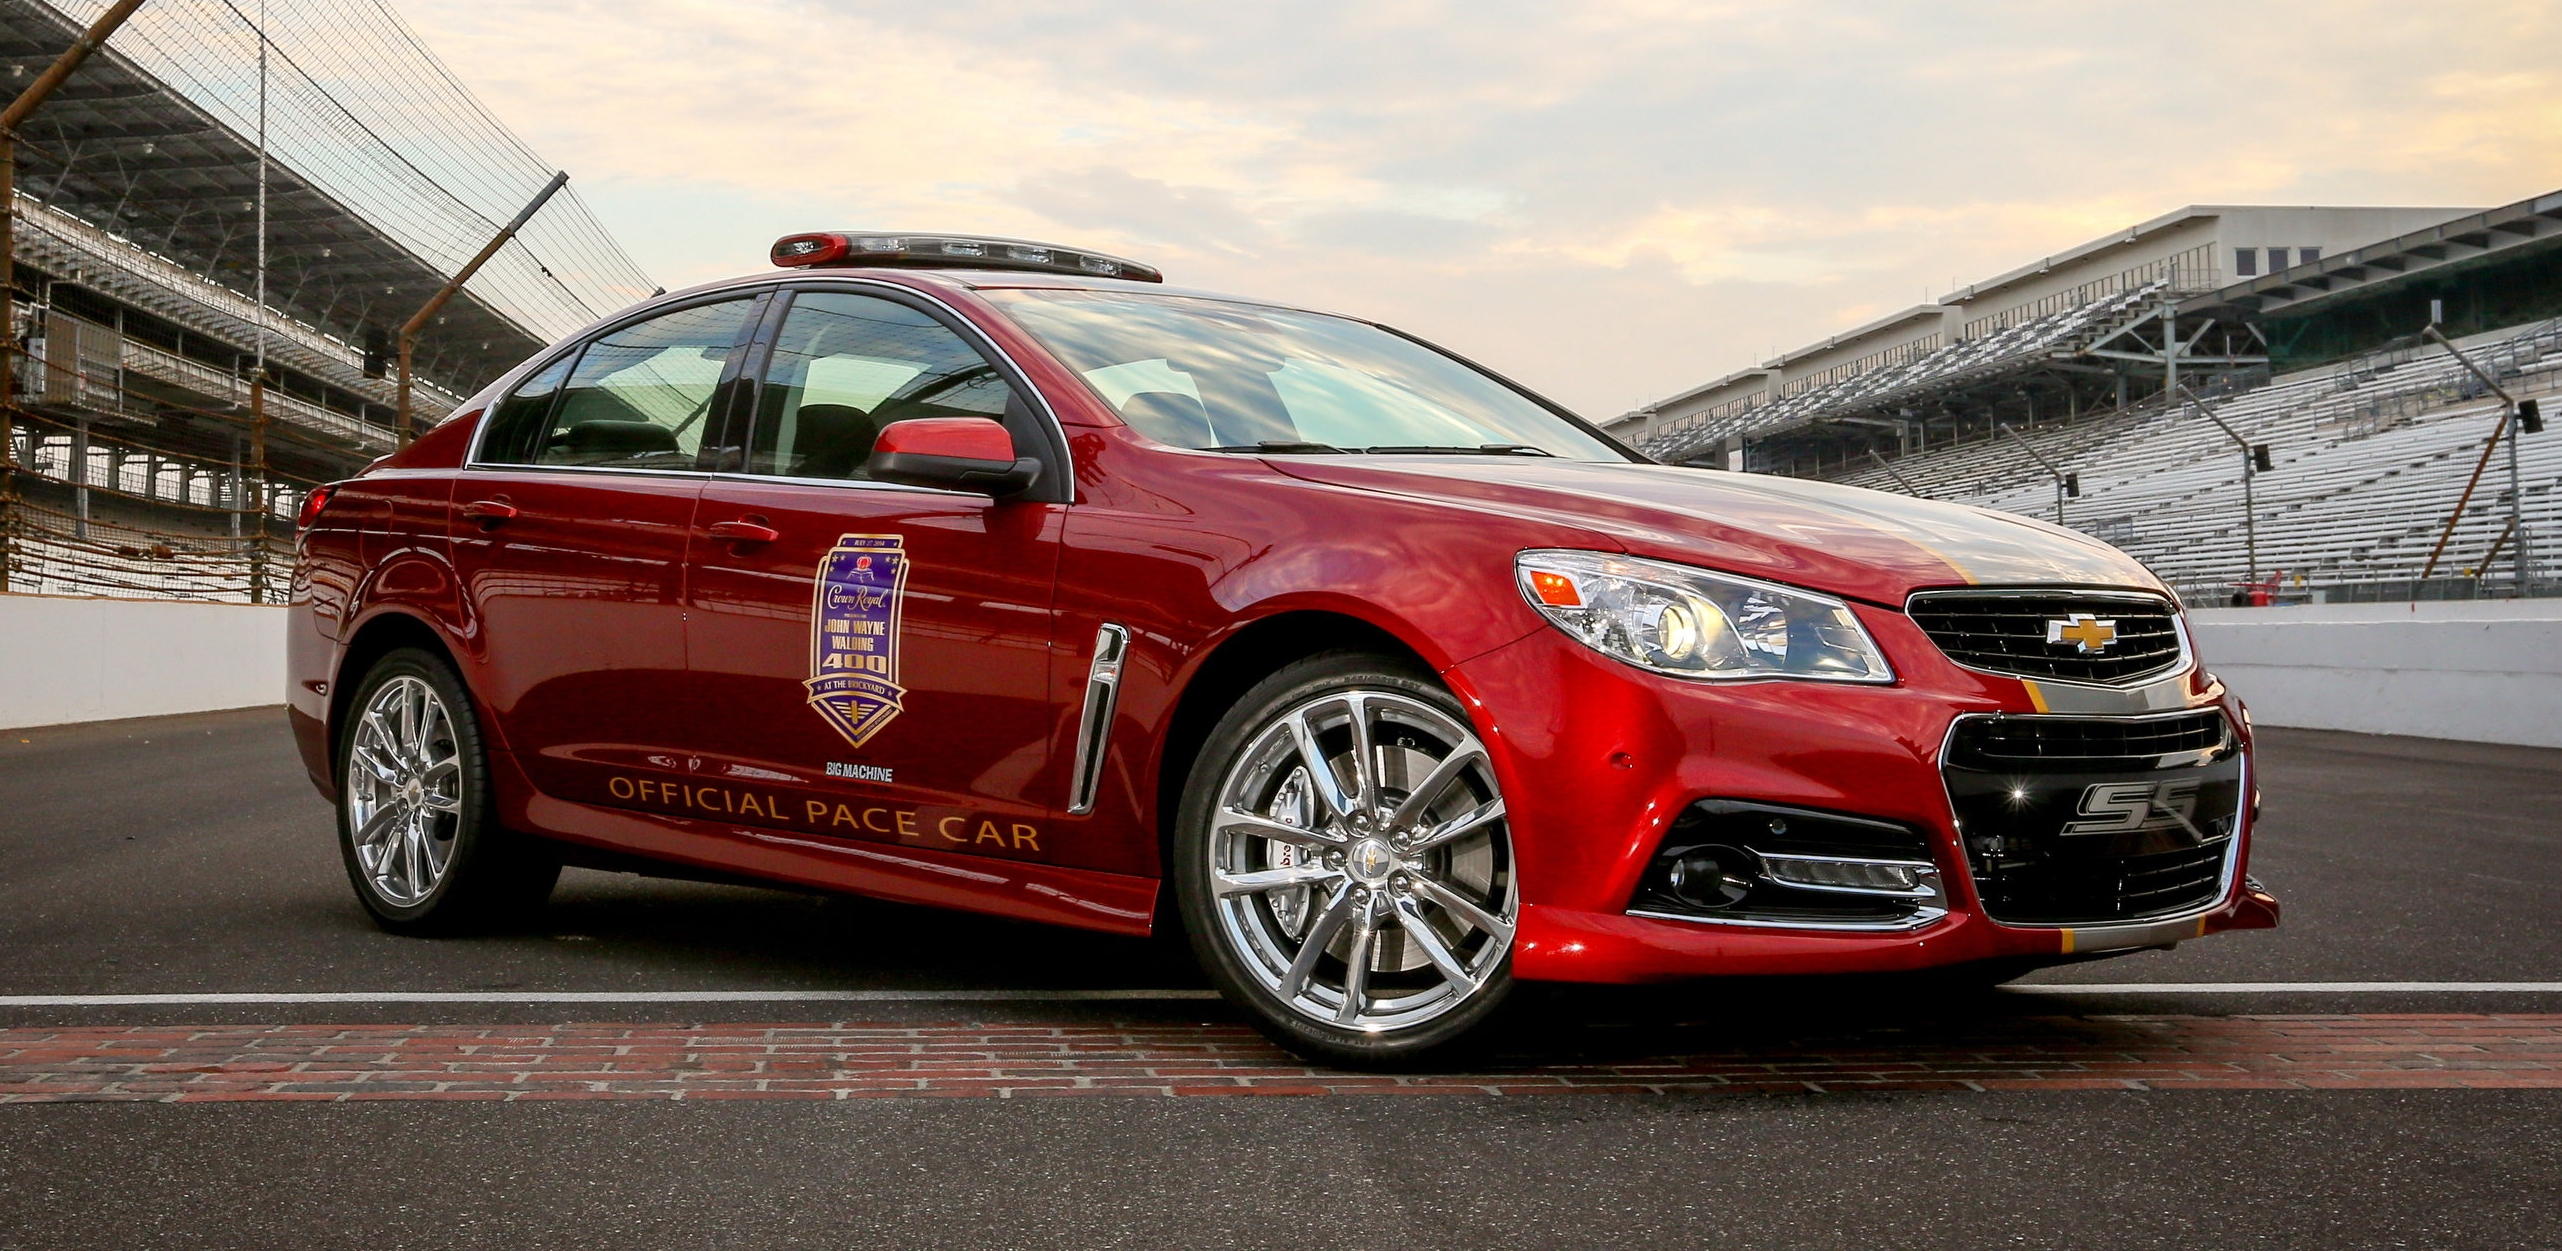 2014 Chevrolet SS Pace Car | Top Speed. »